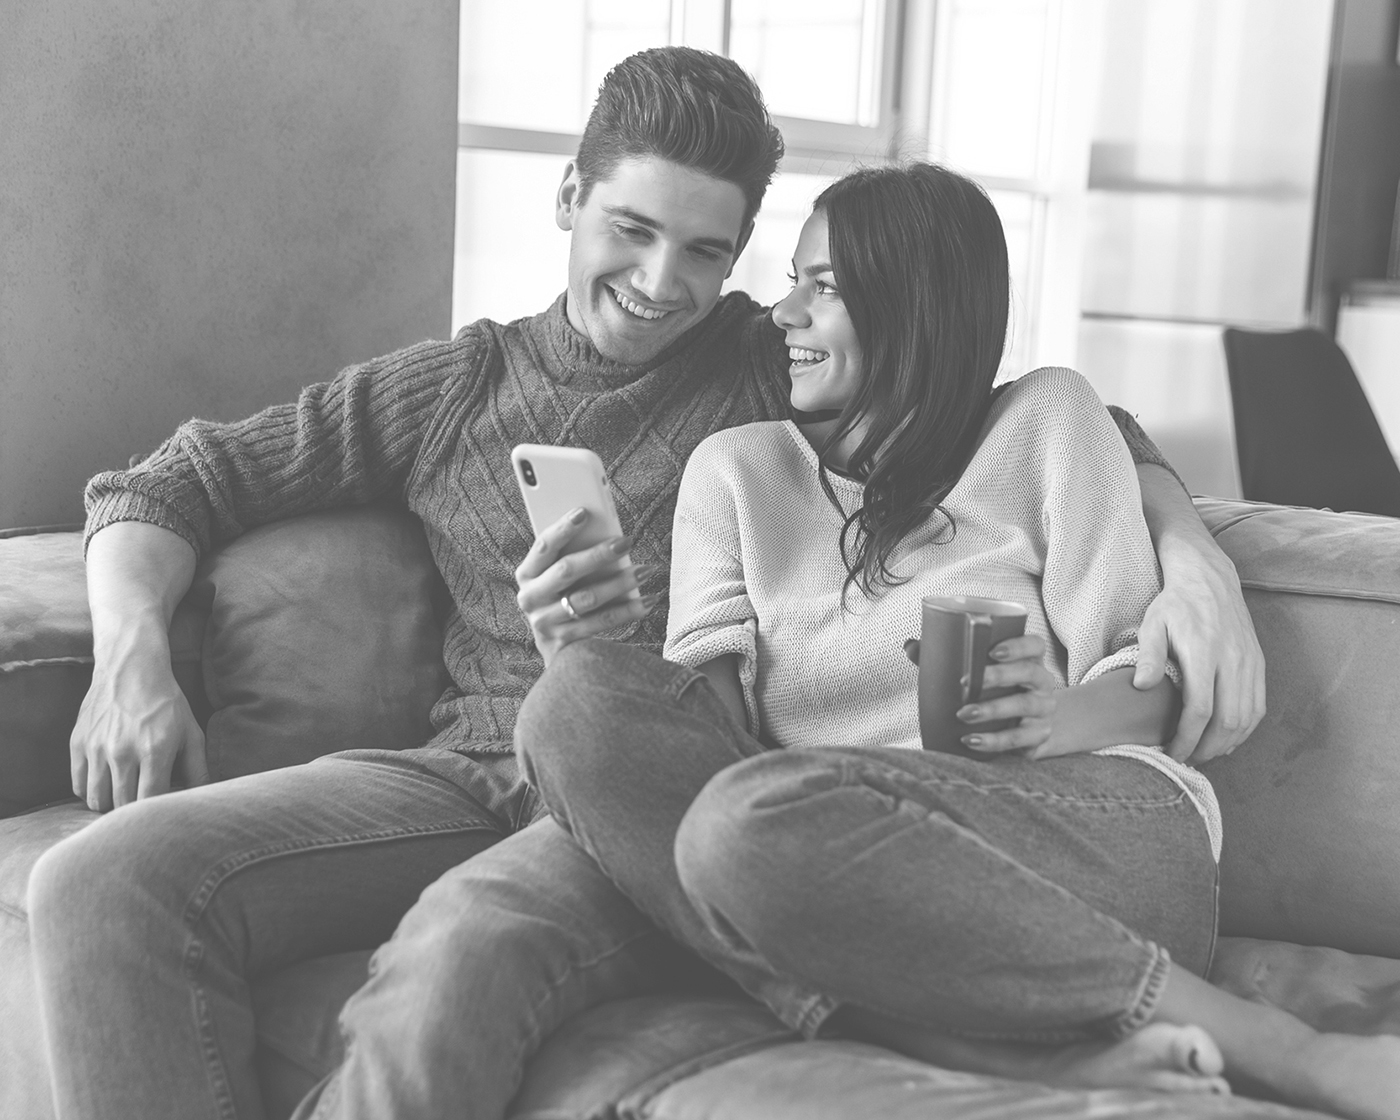 a man in cable knit sweater with his arm around a woman in a light sweater both looking at the phone in her right hand